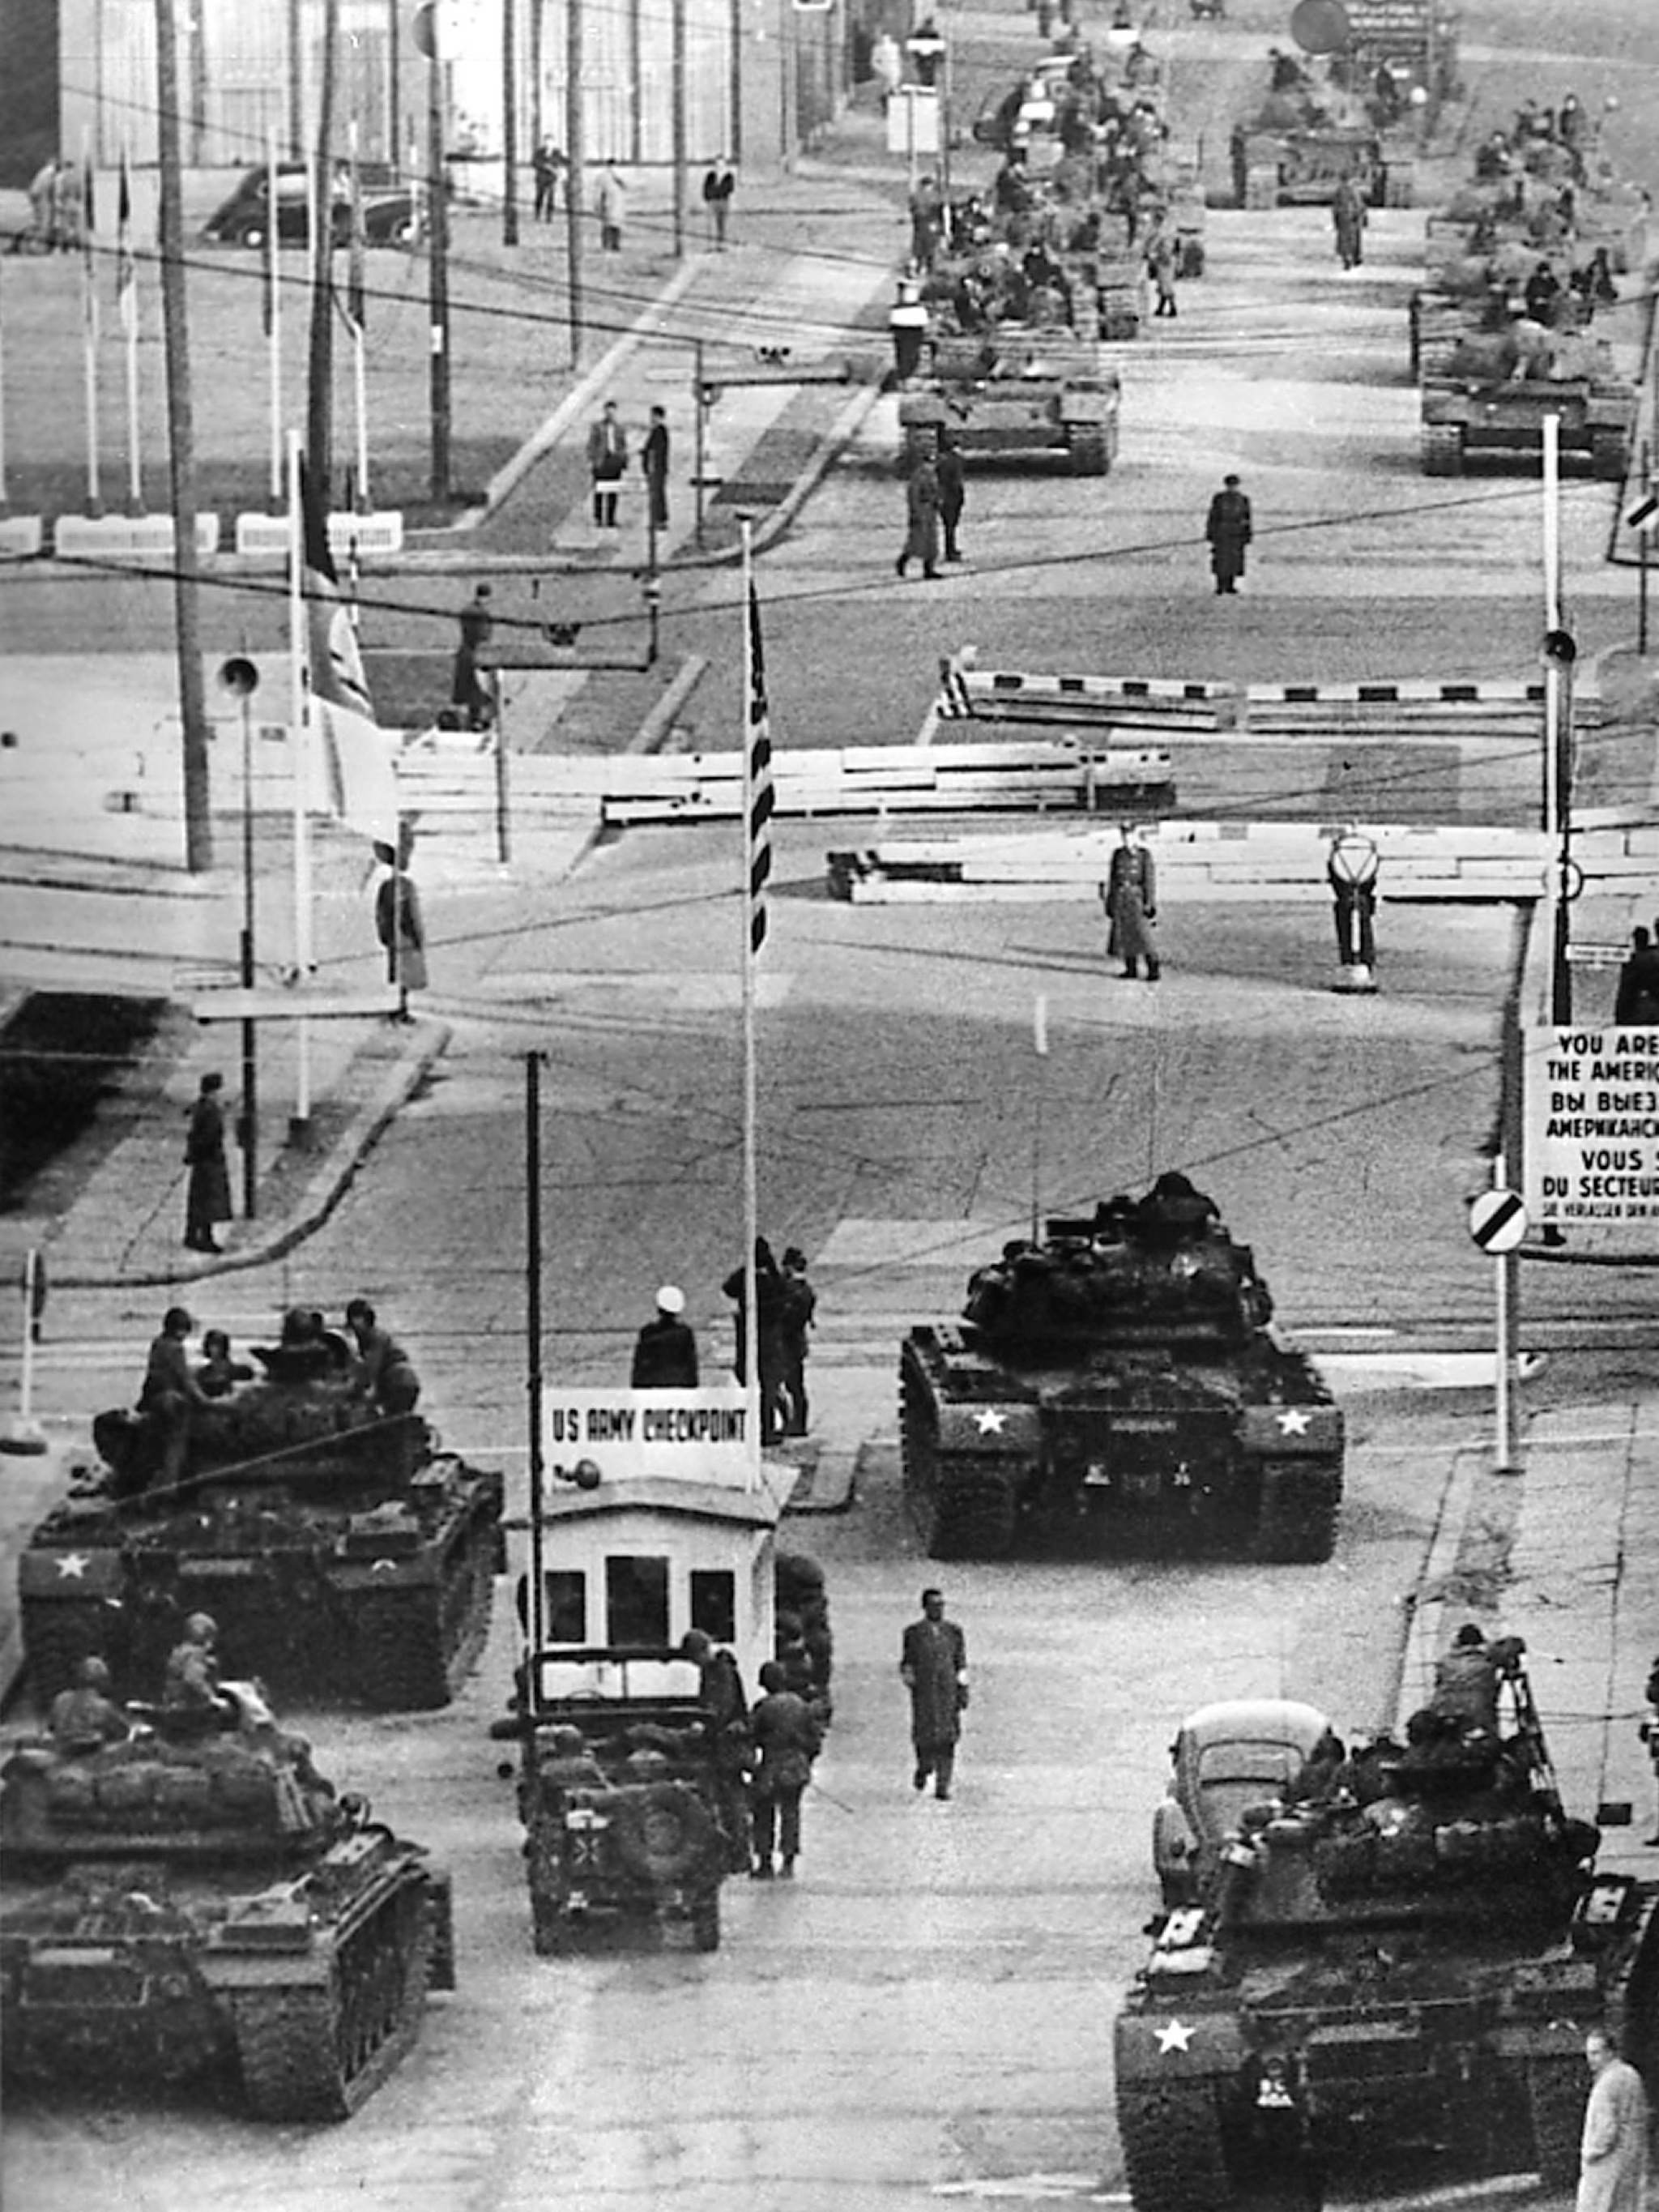 U.S. Army tanks, foreground, face off against Soviet tanks across the Berlin Wall at Checkpoint Charlie on the Friedrichstrasse, in a tense standoff on Oct. 27 and 28, 1961.